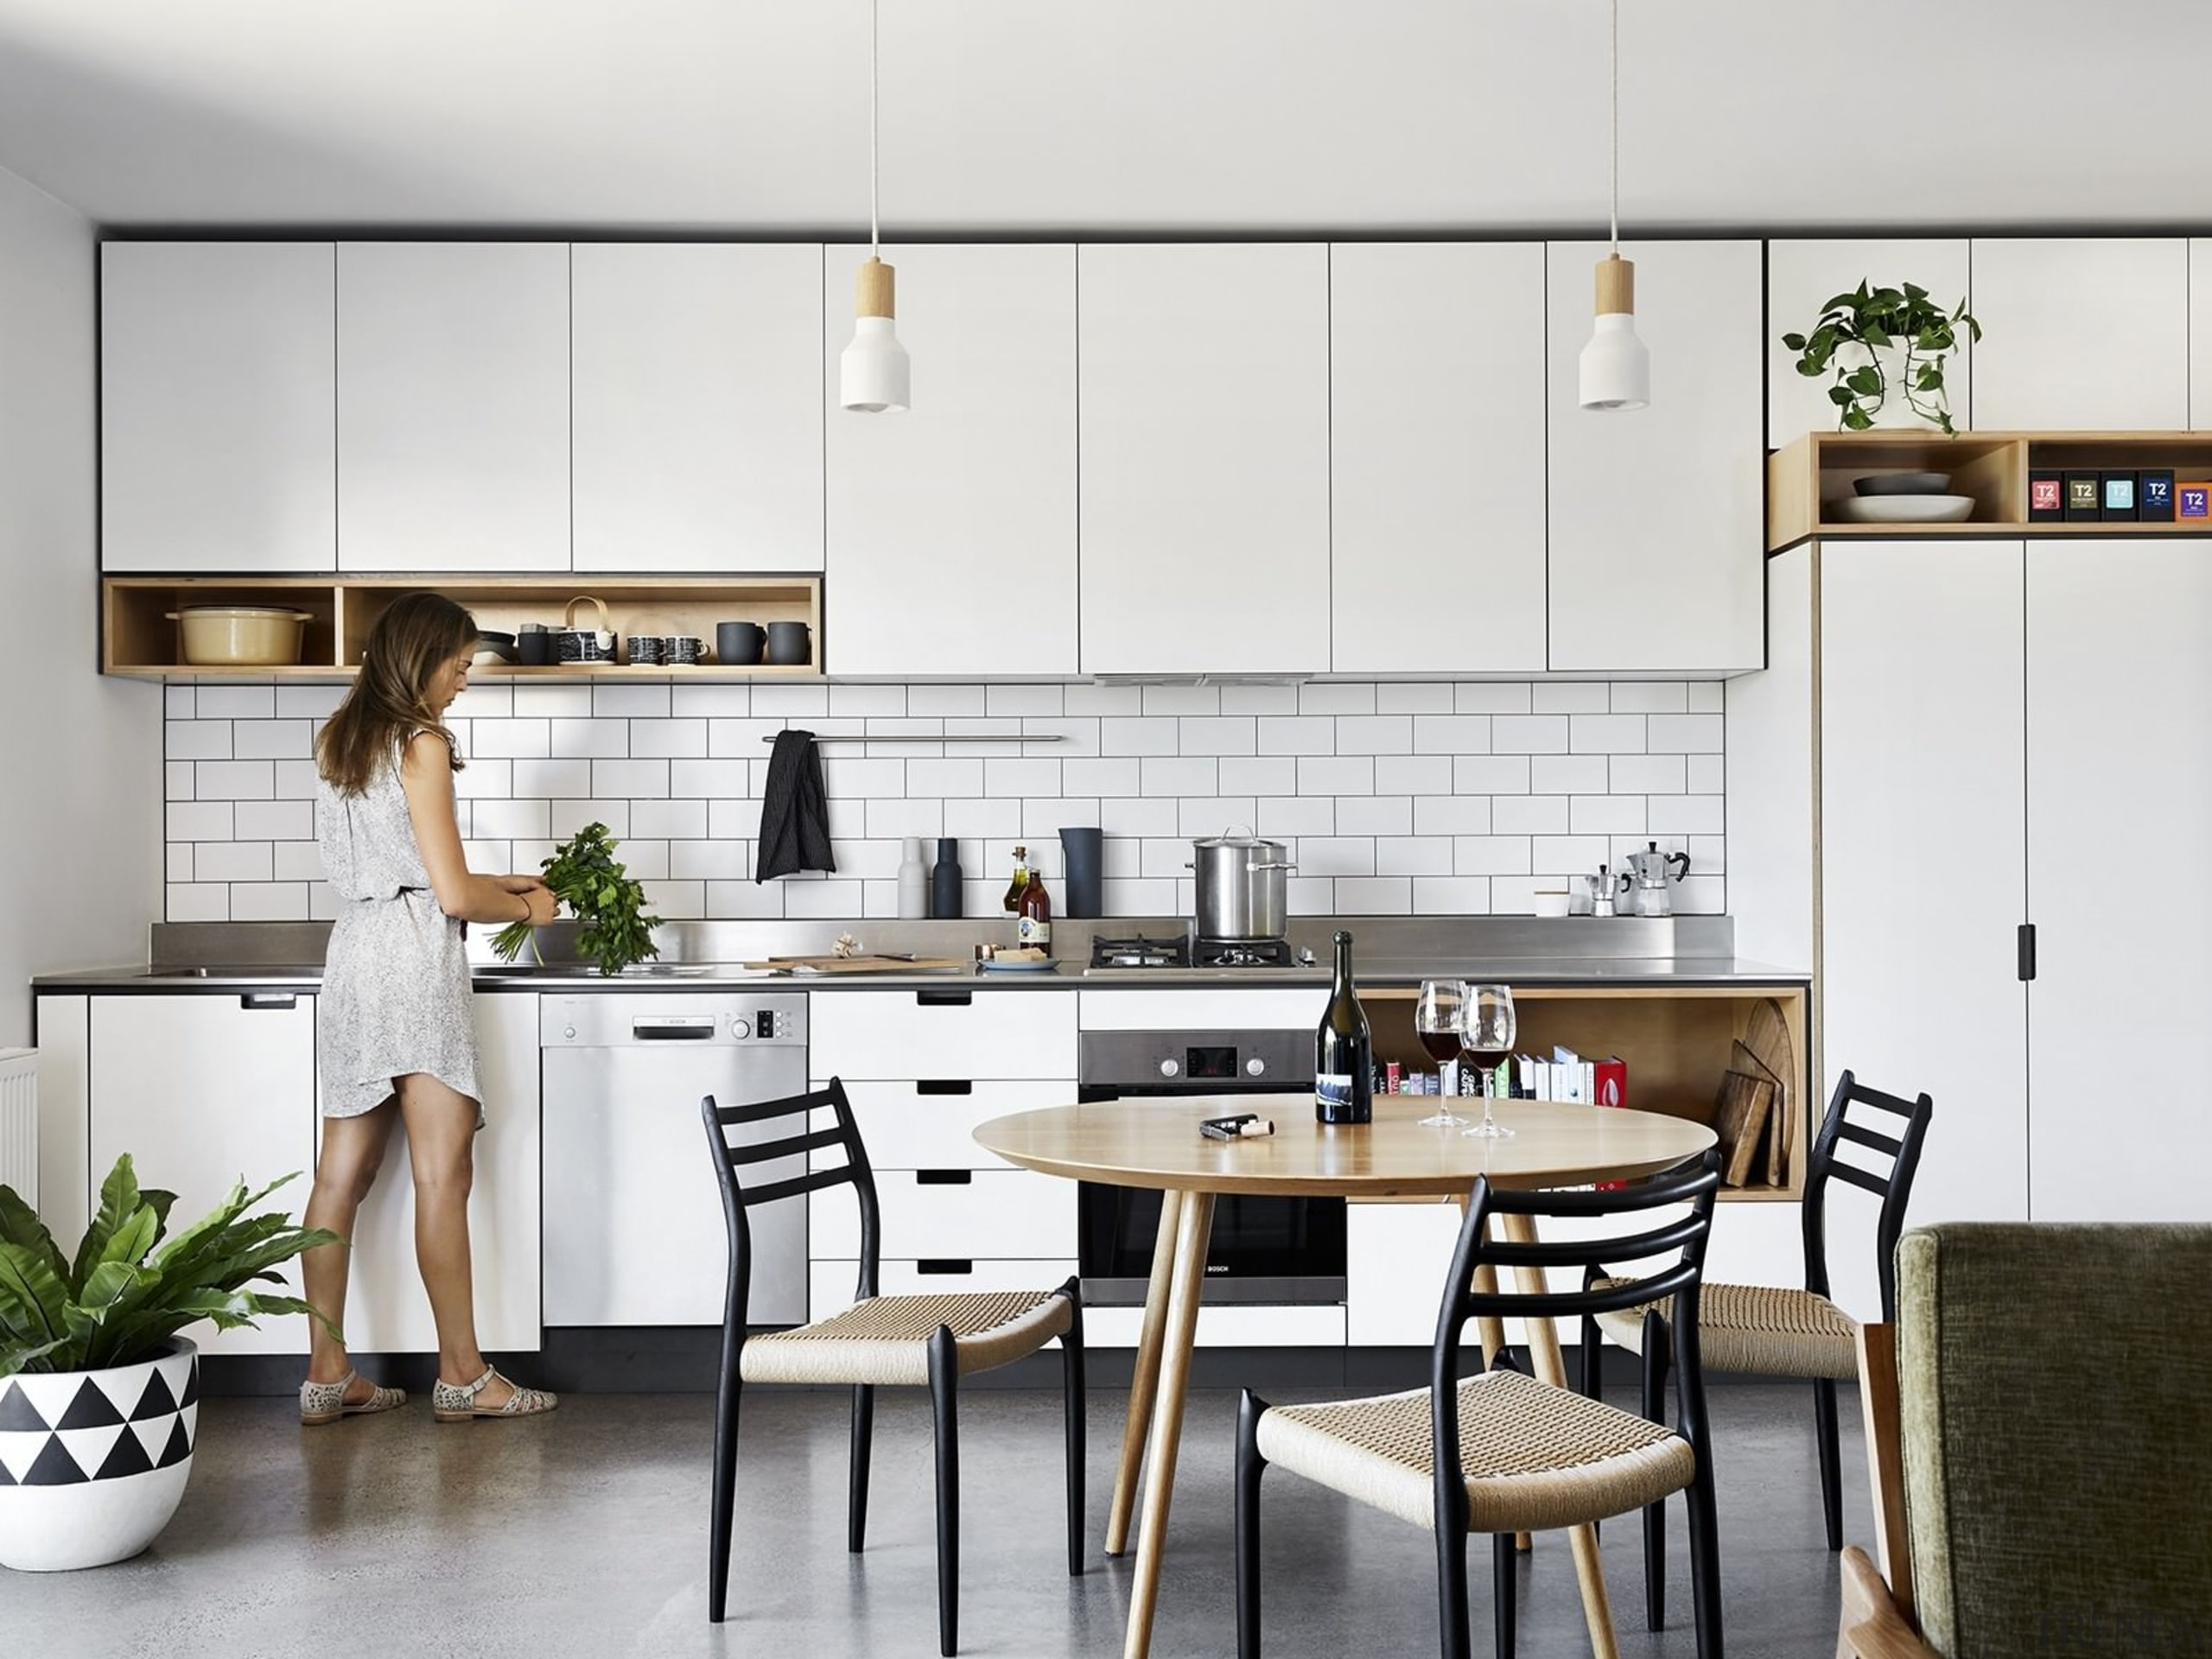 Architect: Liam WallisPhotography by Tess Kelly countertop, cuisine classique, furniture, interior design, kitchen, product design, room, white